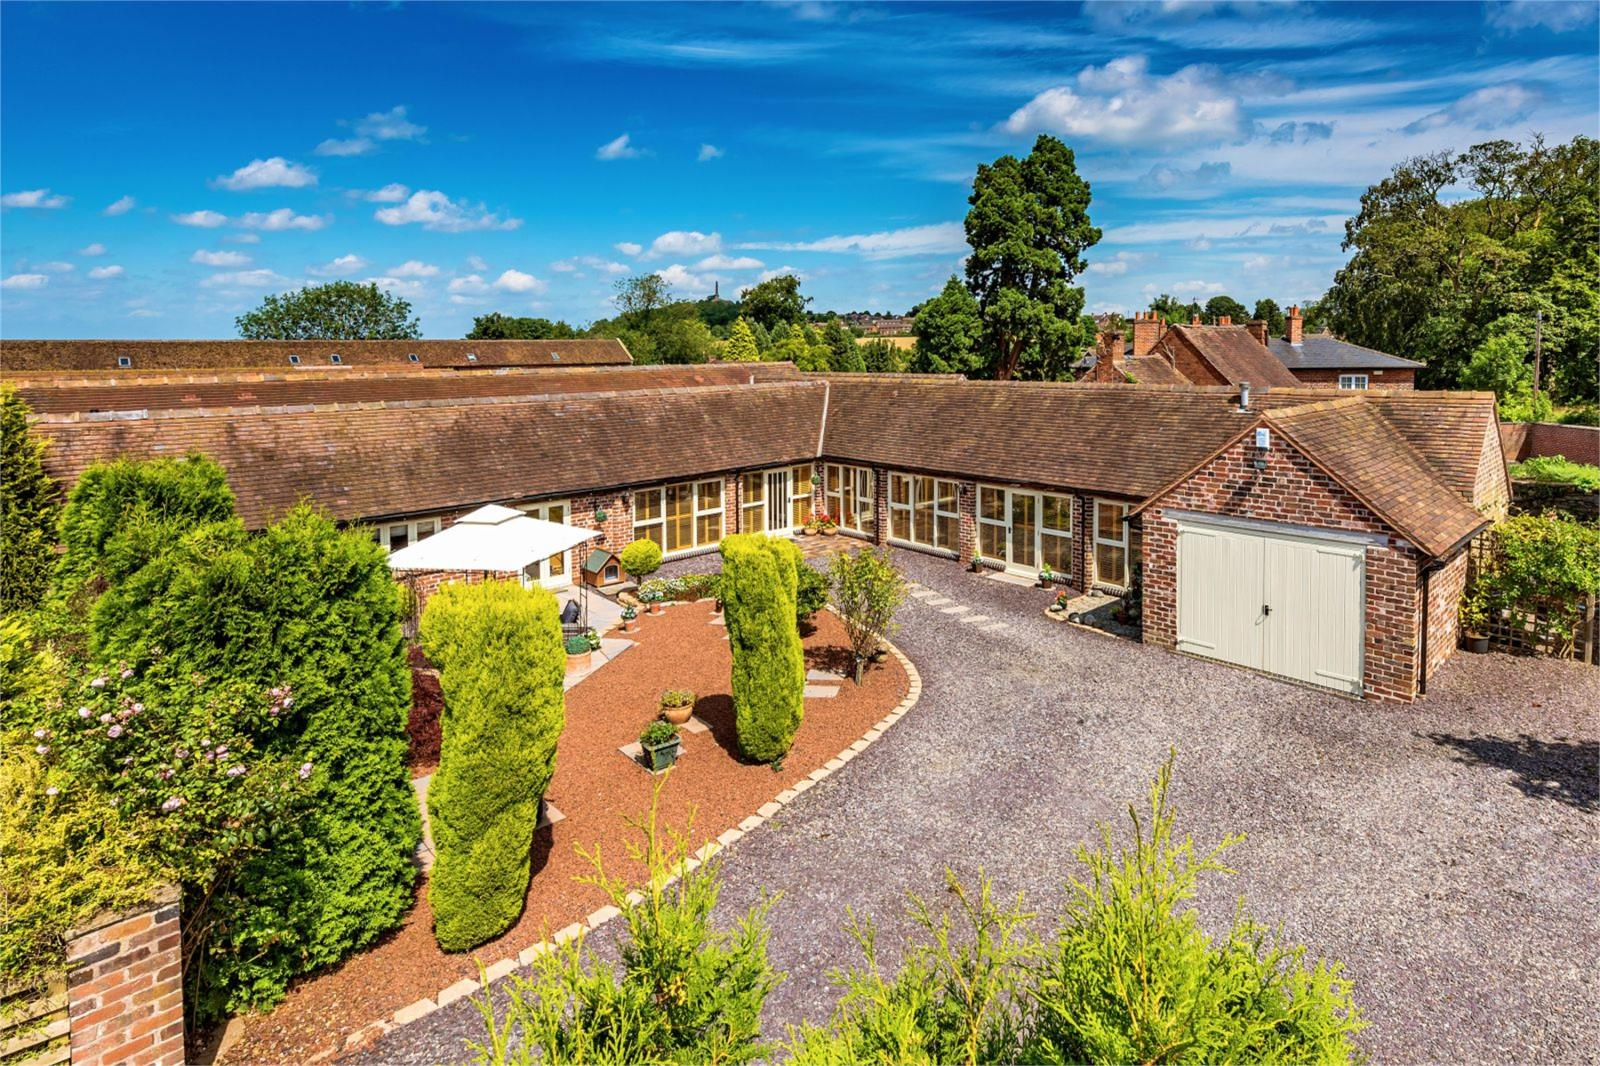 5 Bedrooms Bungalow for sale in The Bullpen, Honnington Grange Farm, Wellington Road, Honnington, Newport, TF10